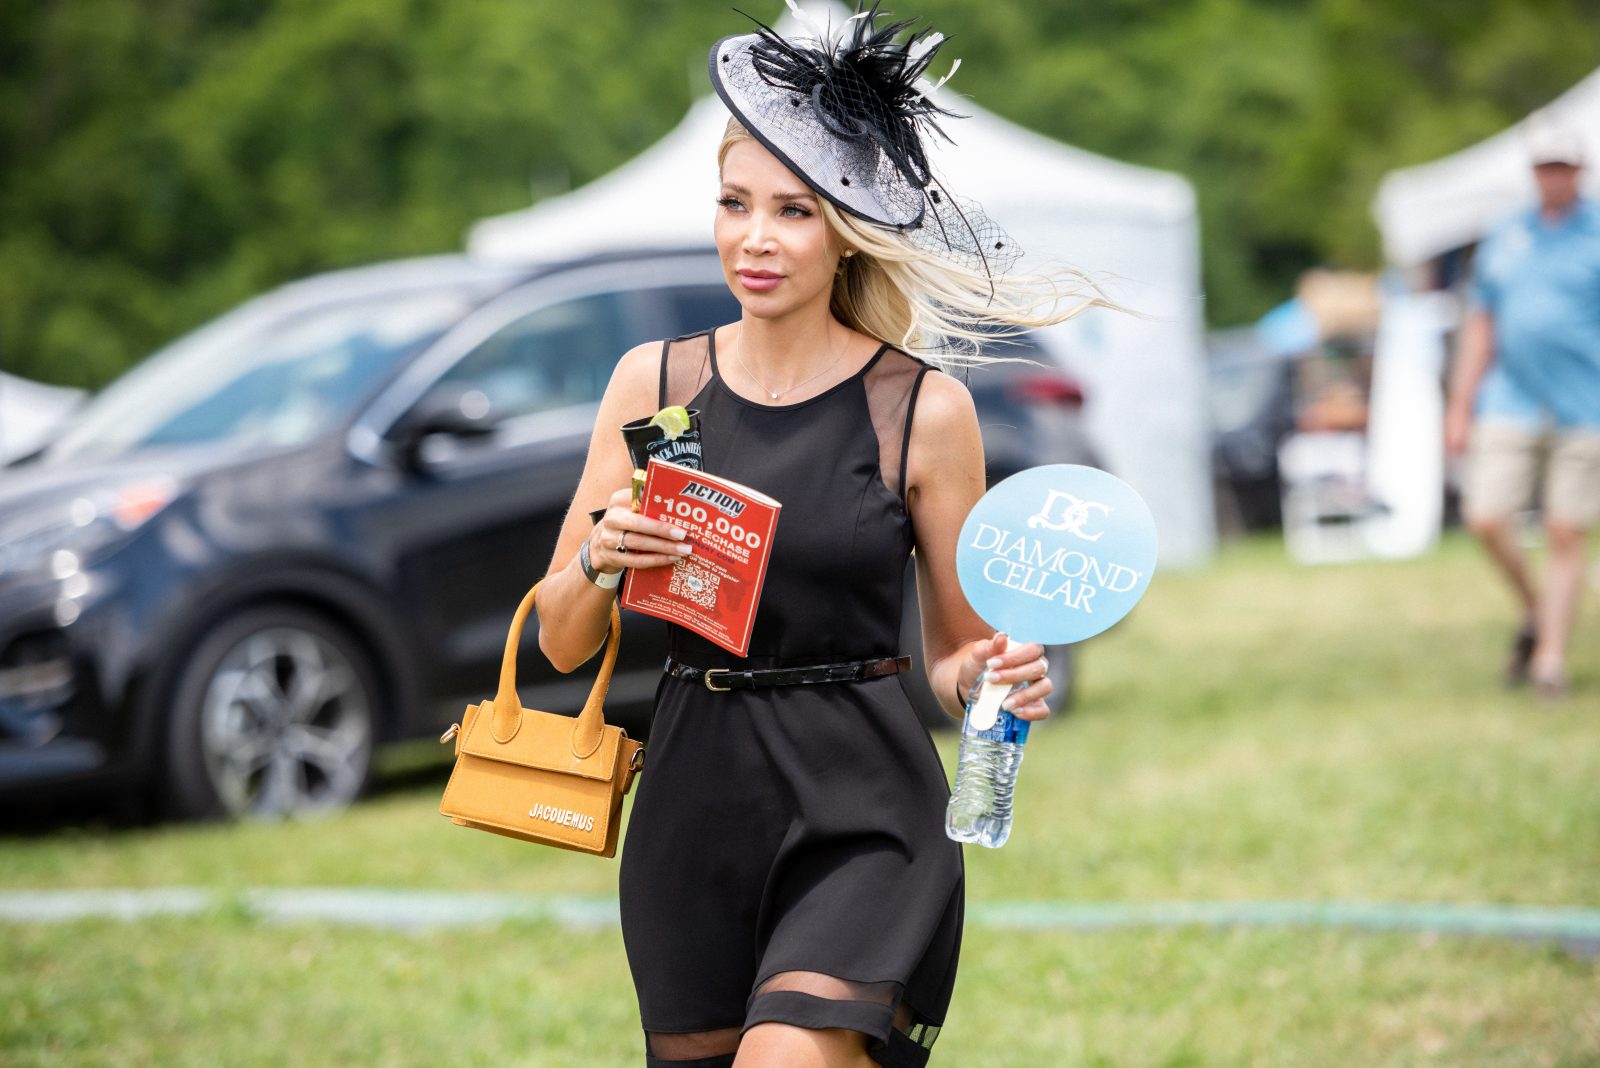 Kristen Theiben in a black dress, carrying swag from Steeplechase 21